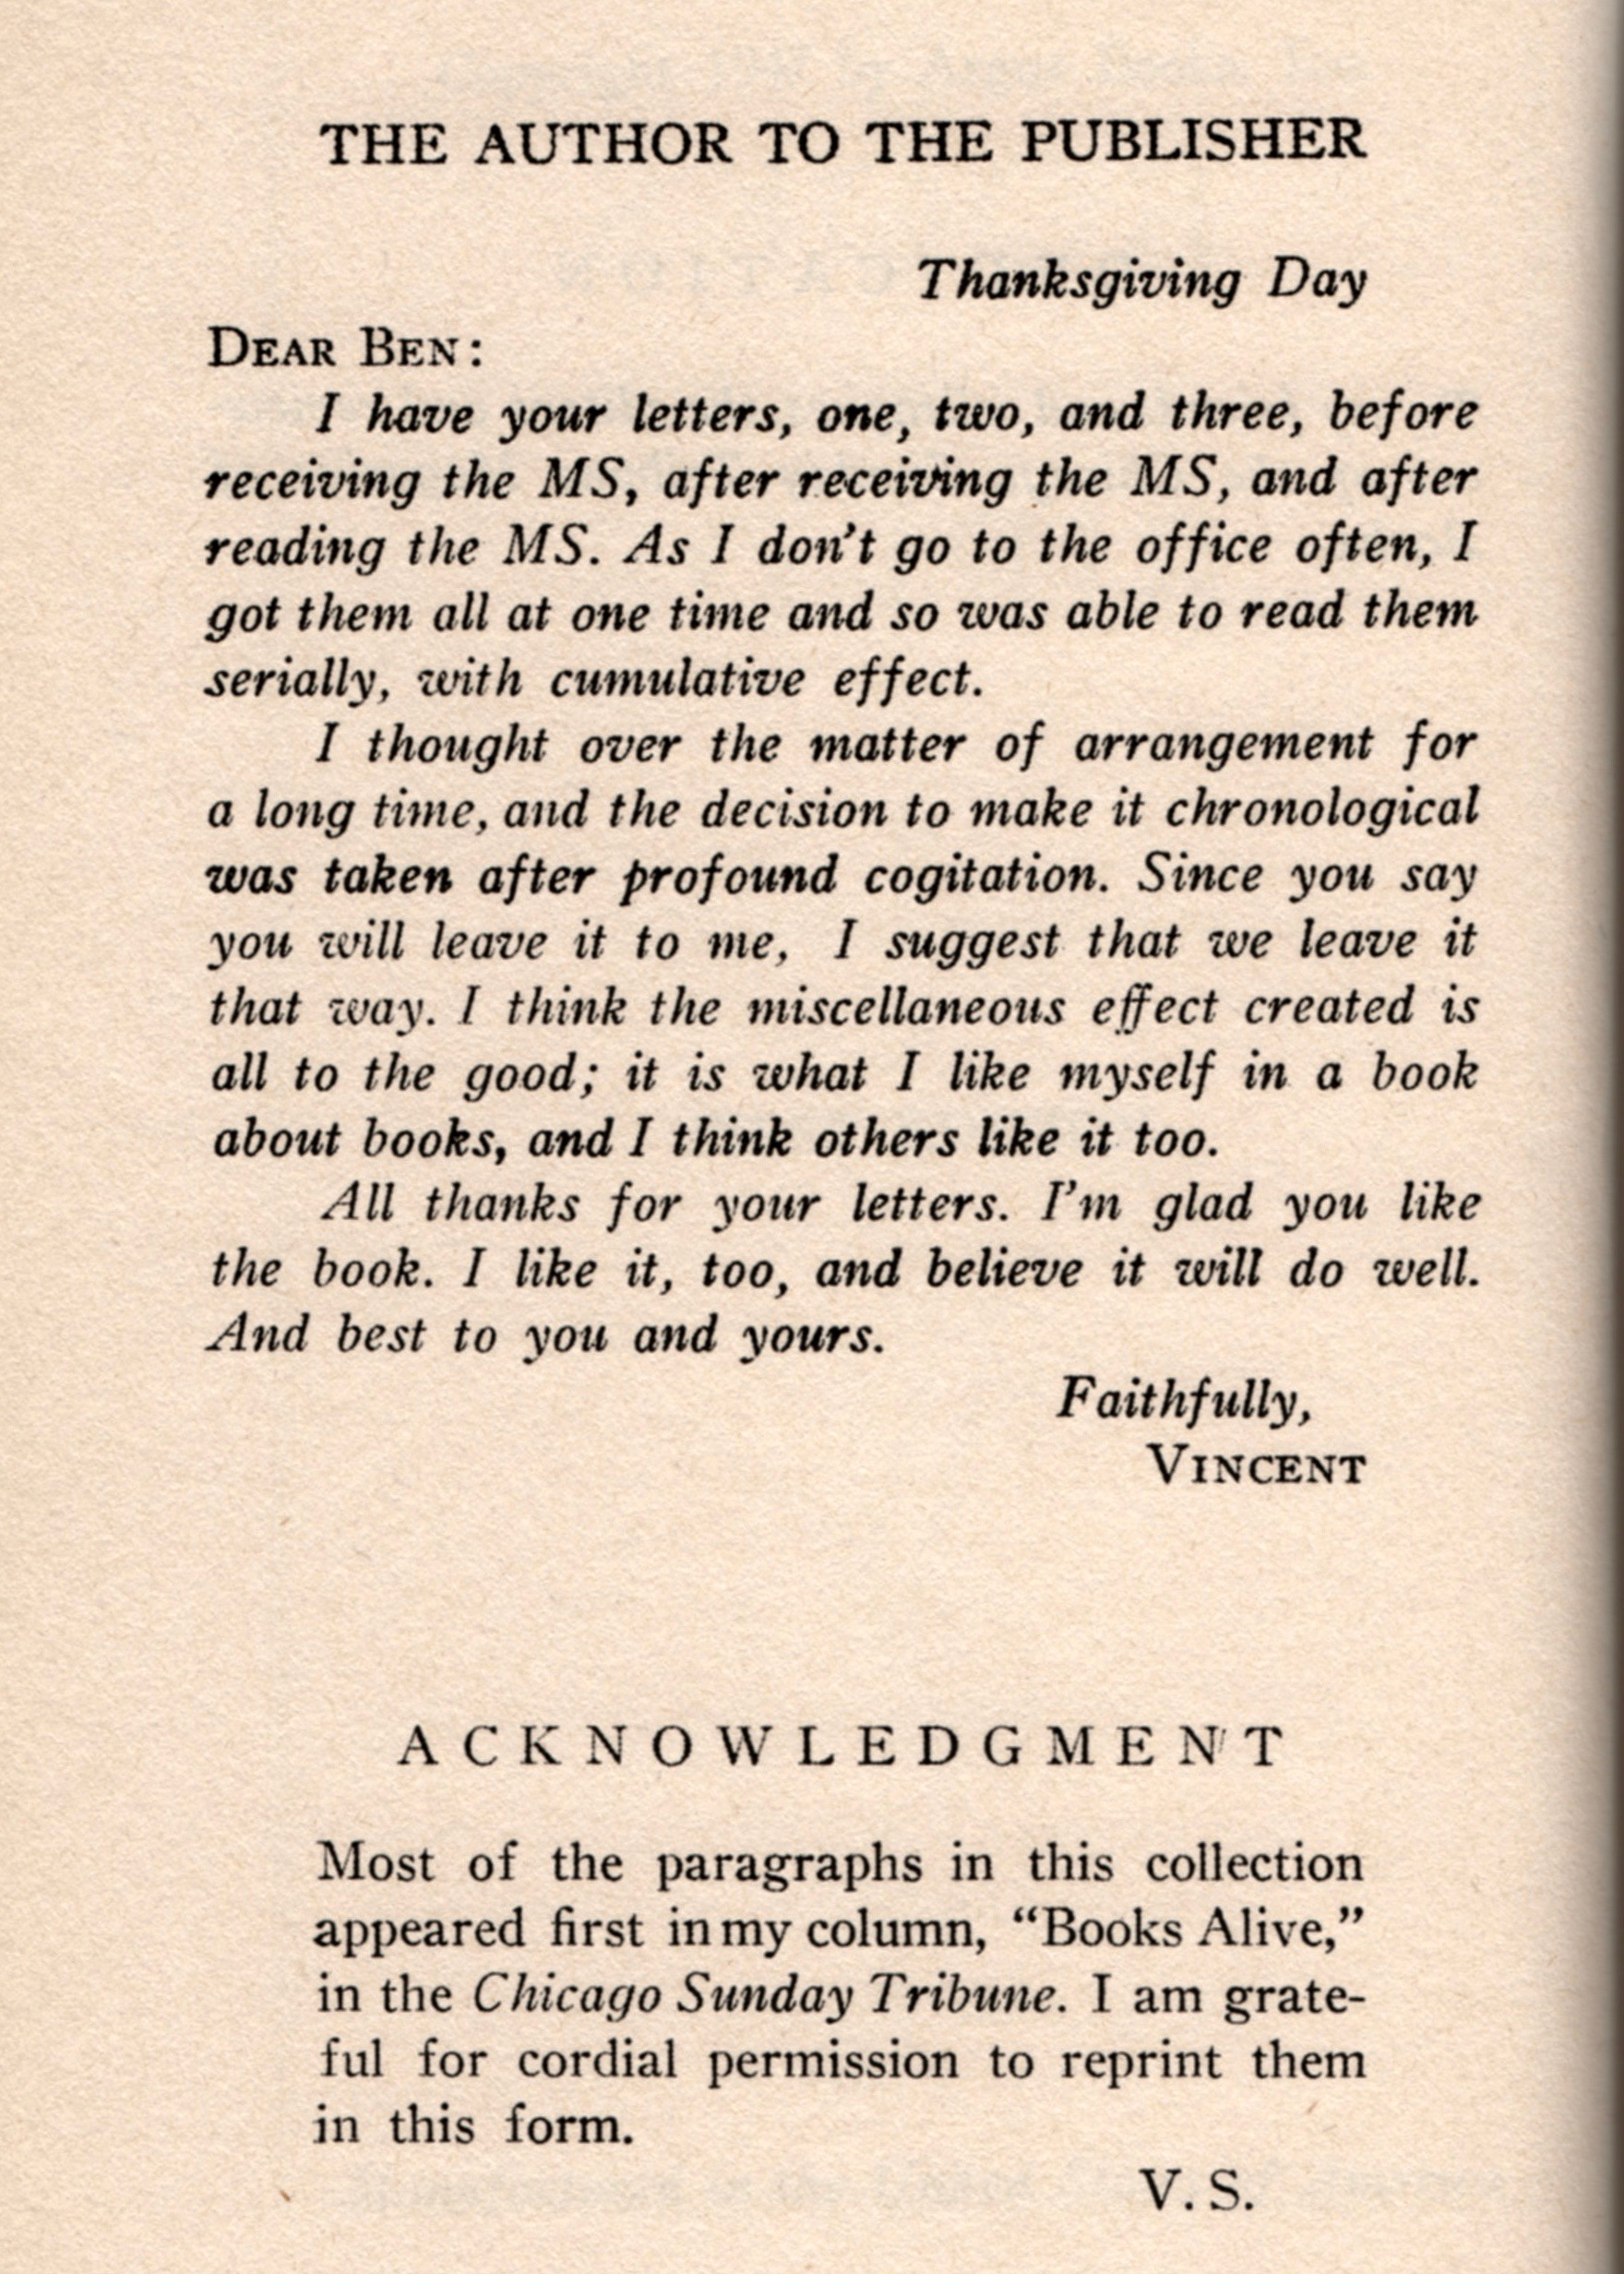 The letter from the author to the publisher.